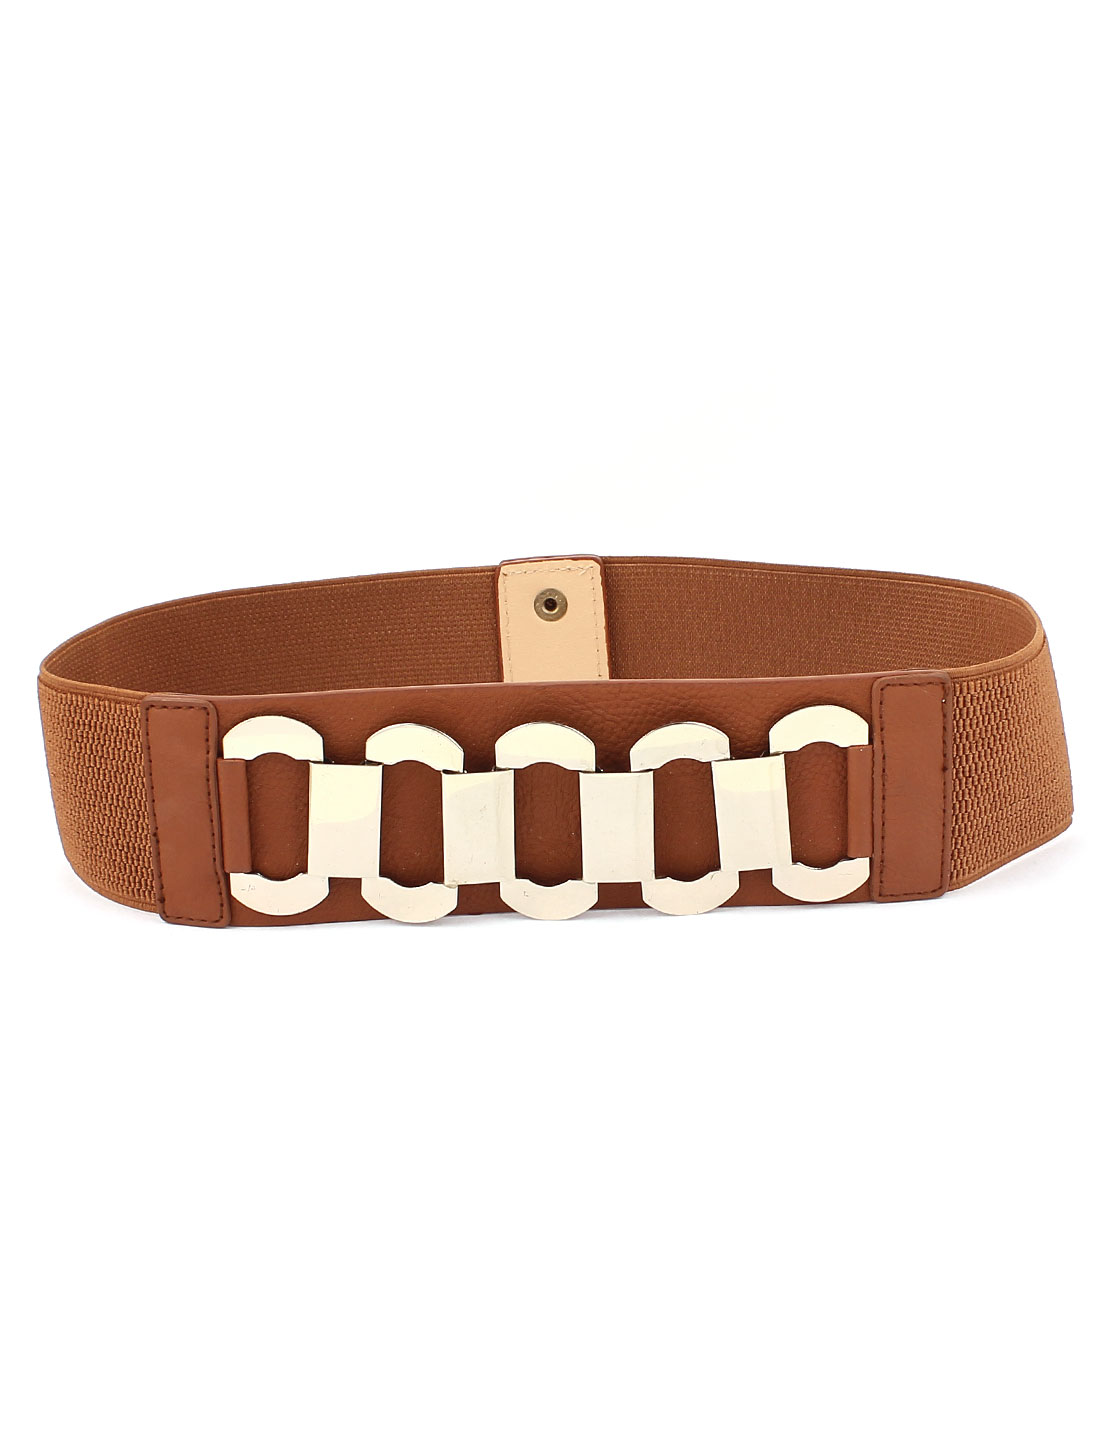 Lady Metal Interlock Buckle Stretch Waist Belt Cinch Band Brown